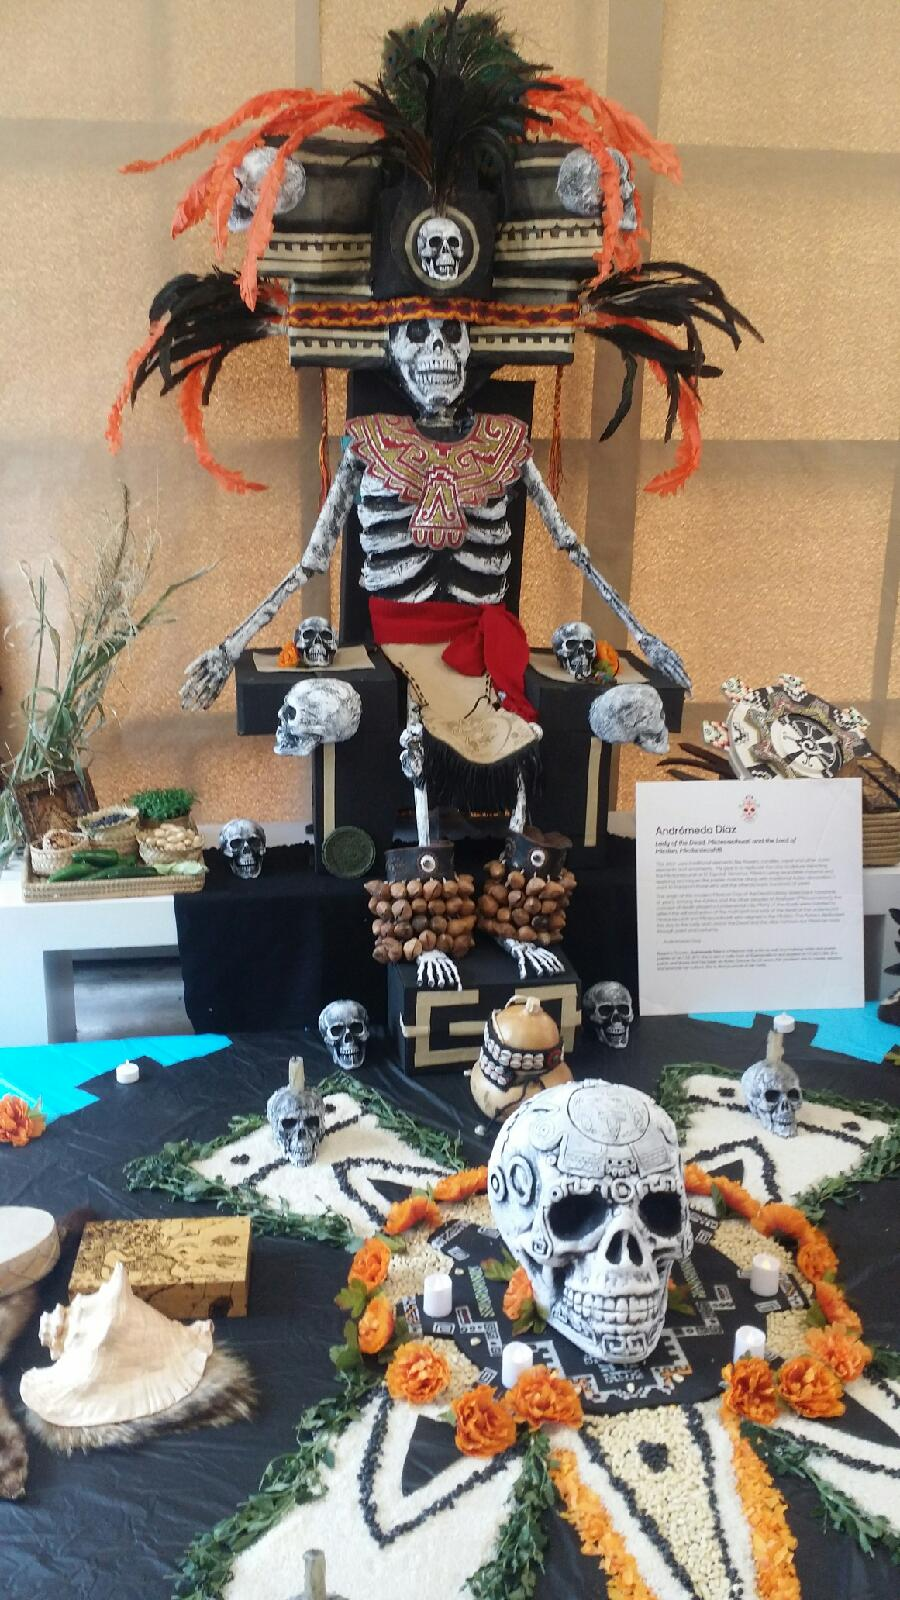 A super awesome altar from the Day of the Dead festivities I checked out. Caption: Super awesome Day of the Dead altar